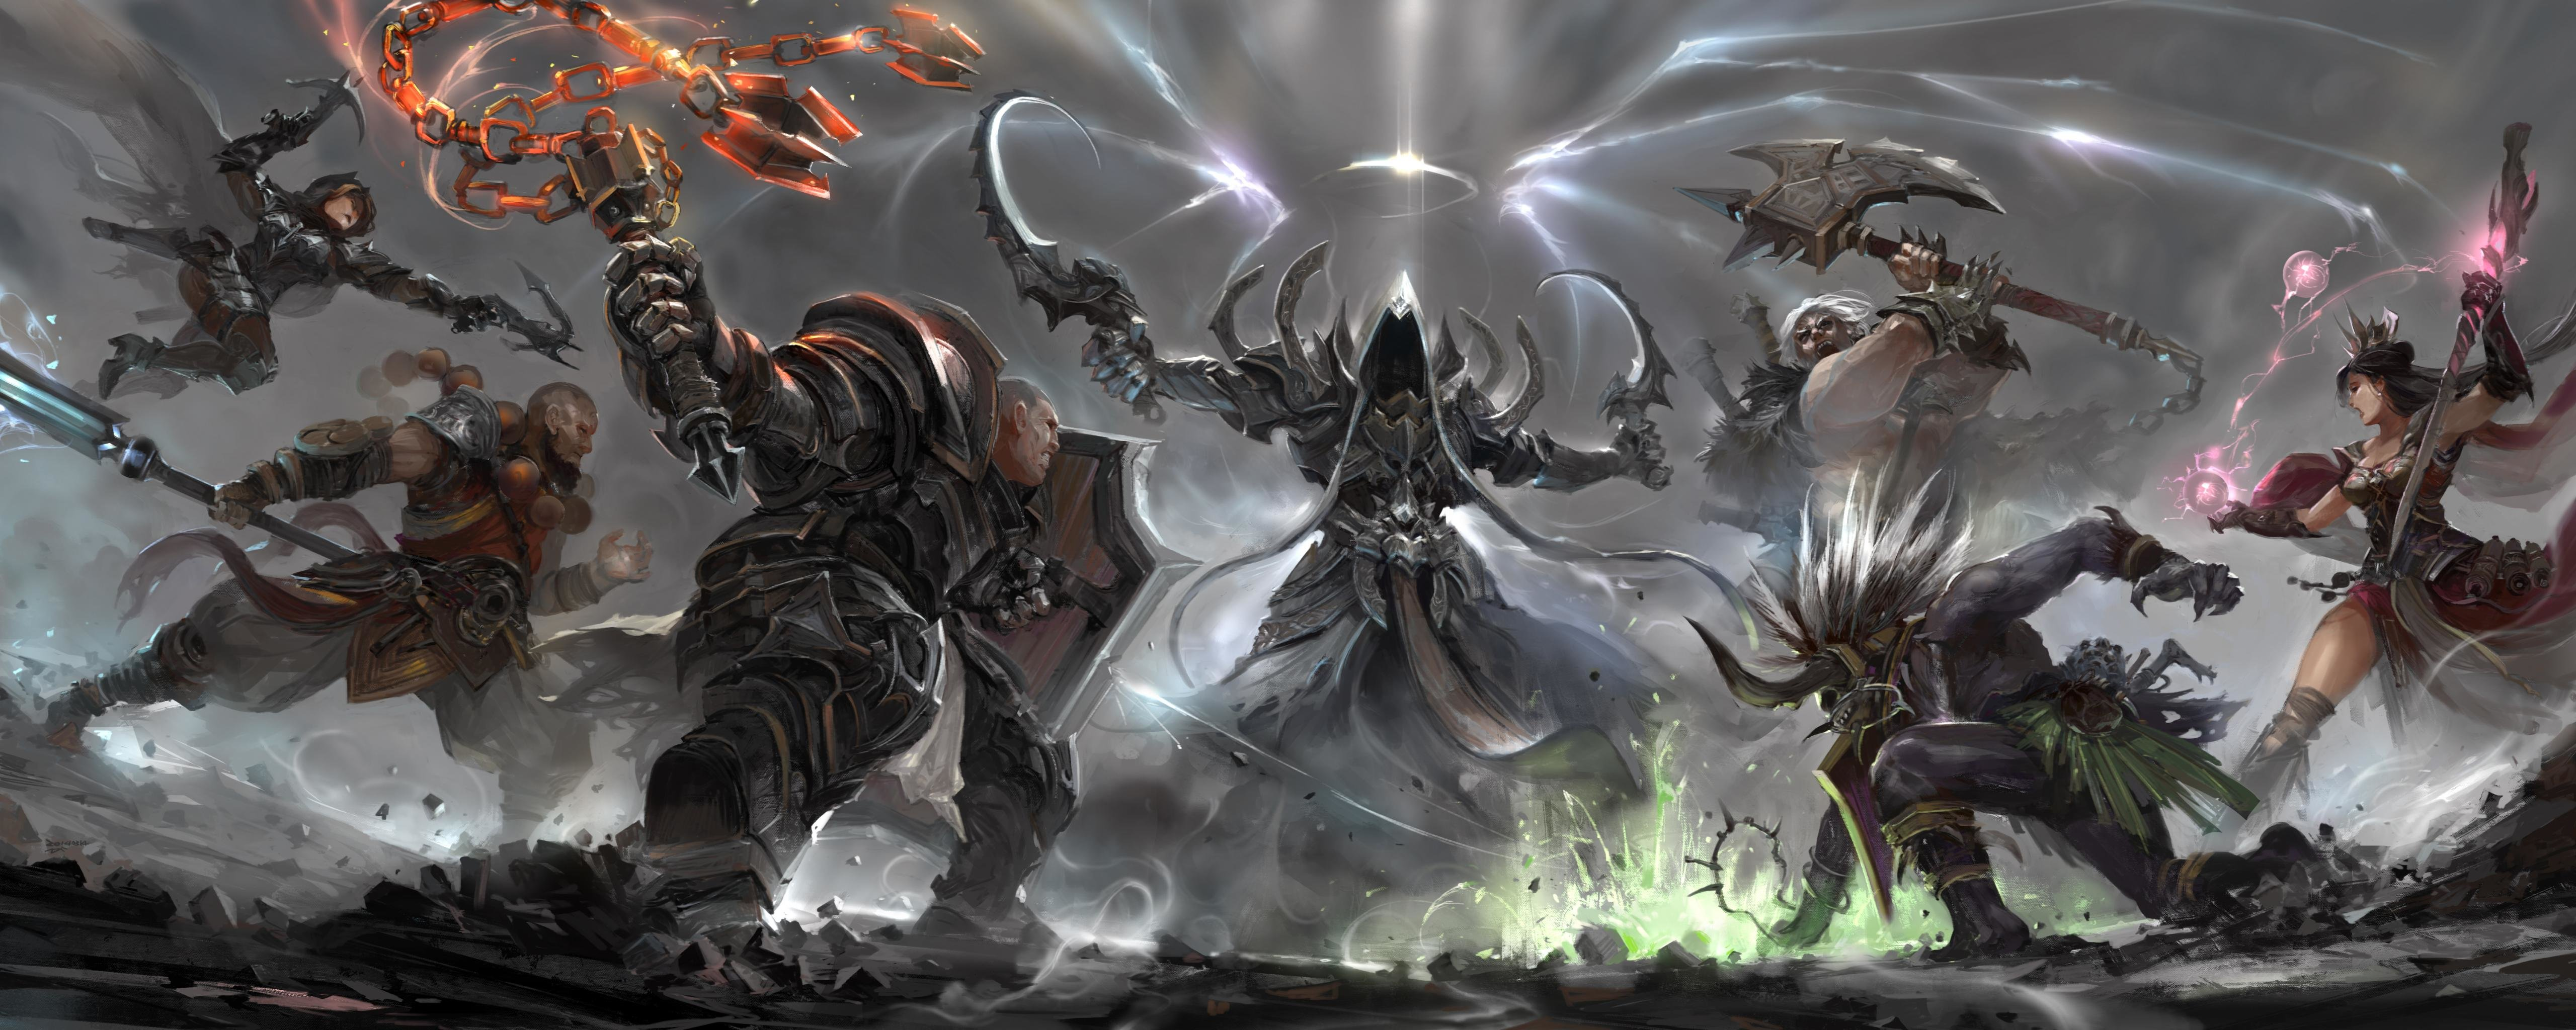 Free download Diablo 3: Reaper Of Souls wallpaper ID:400232 dual screen 5120x2048 for computer